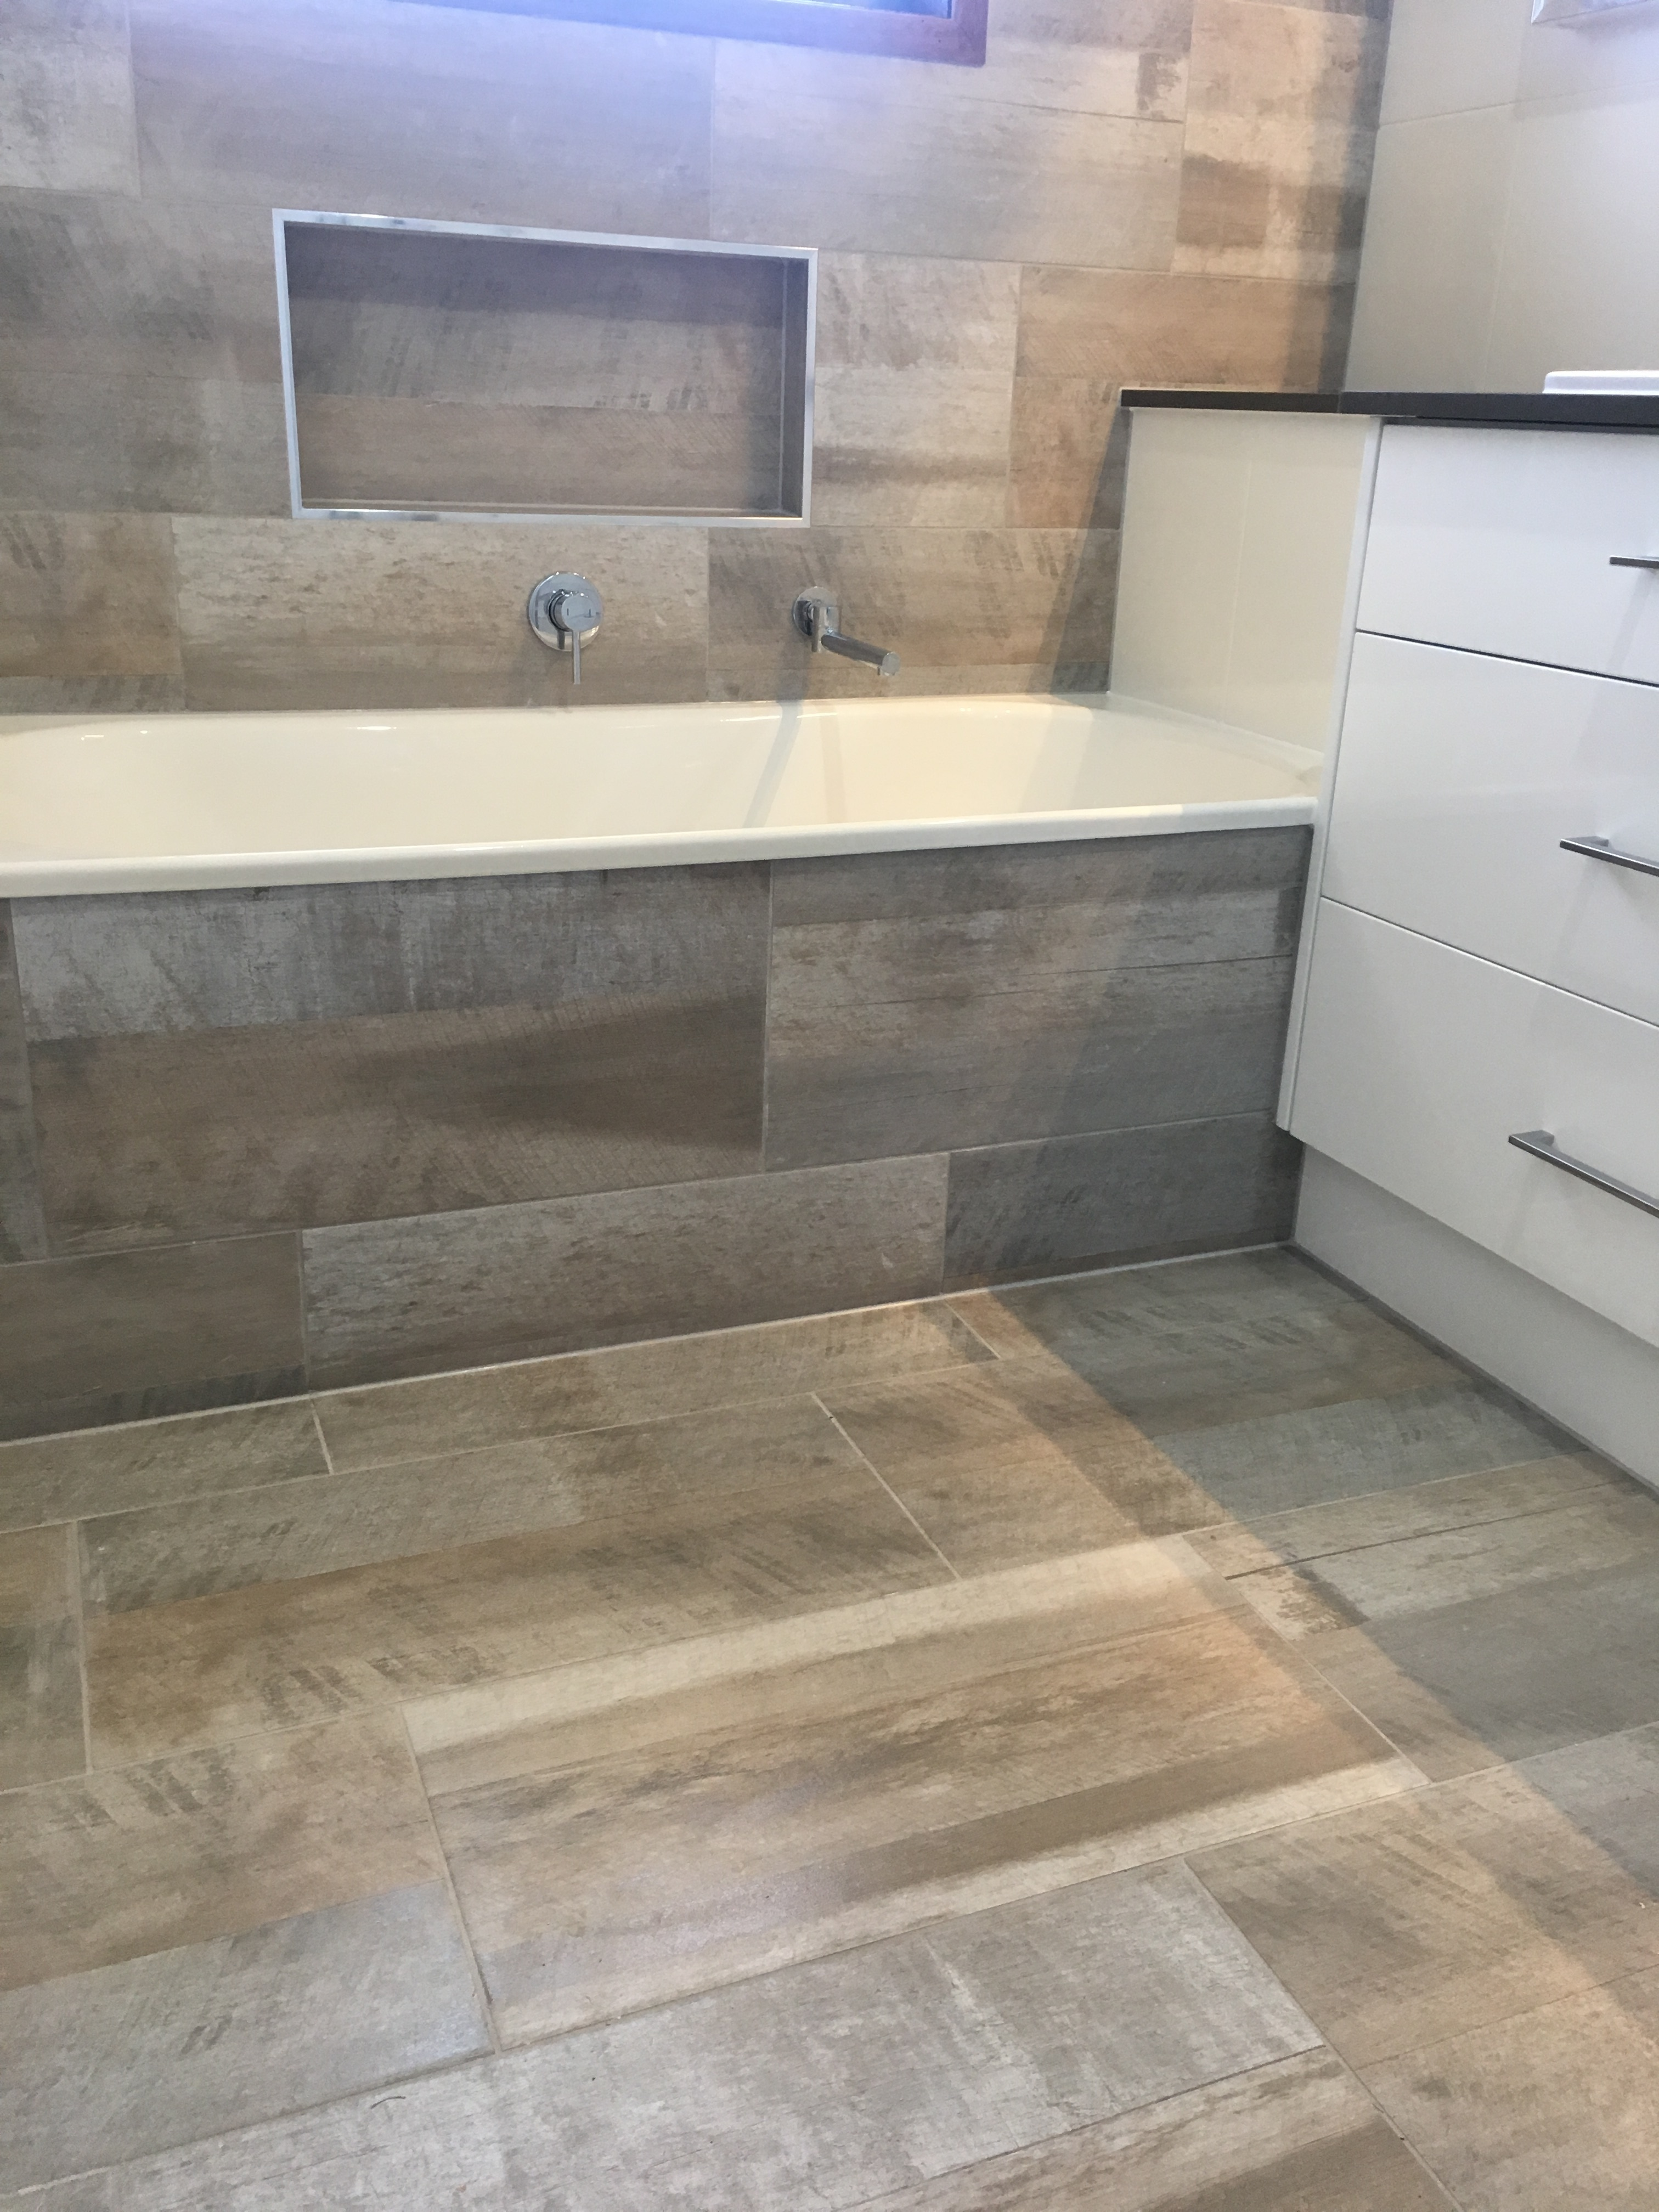 Toowoomba bathroom renovations - Double Vanities Catered Too With Fitting Fixtures Of Your Choice